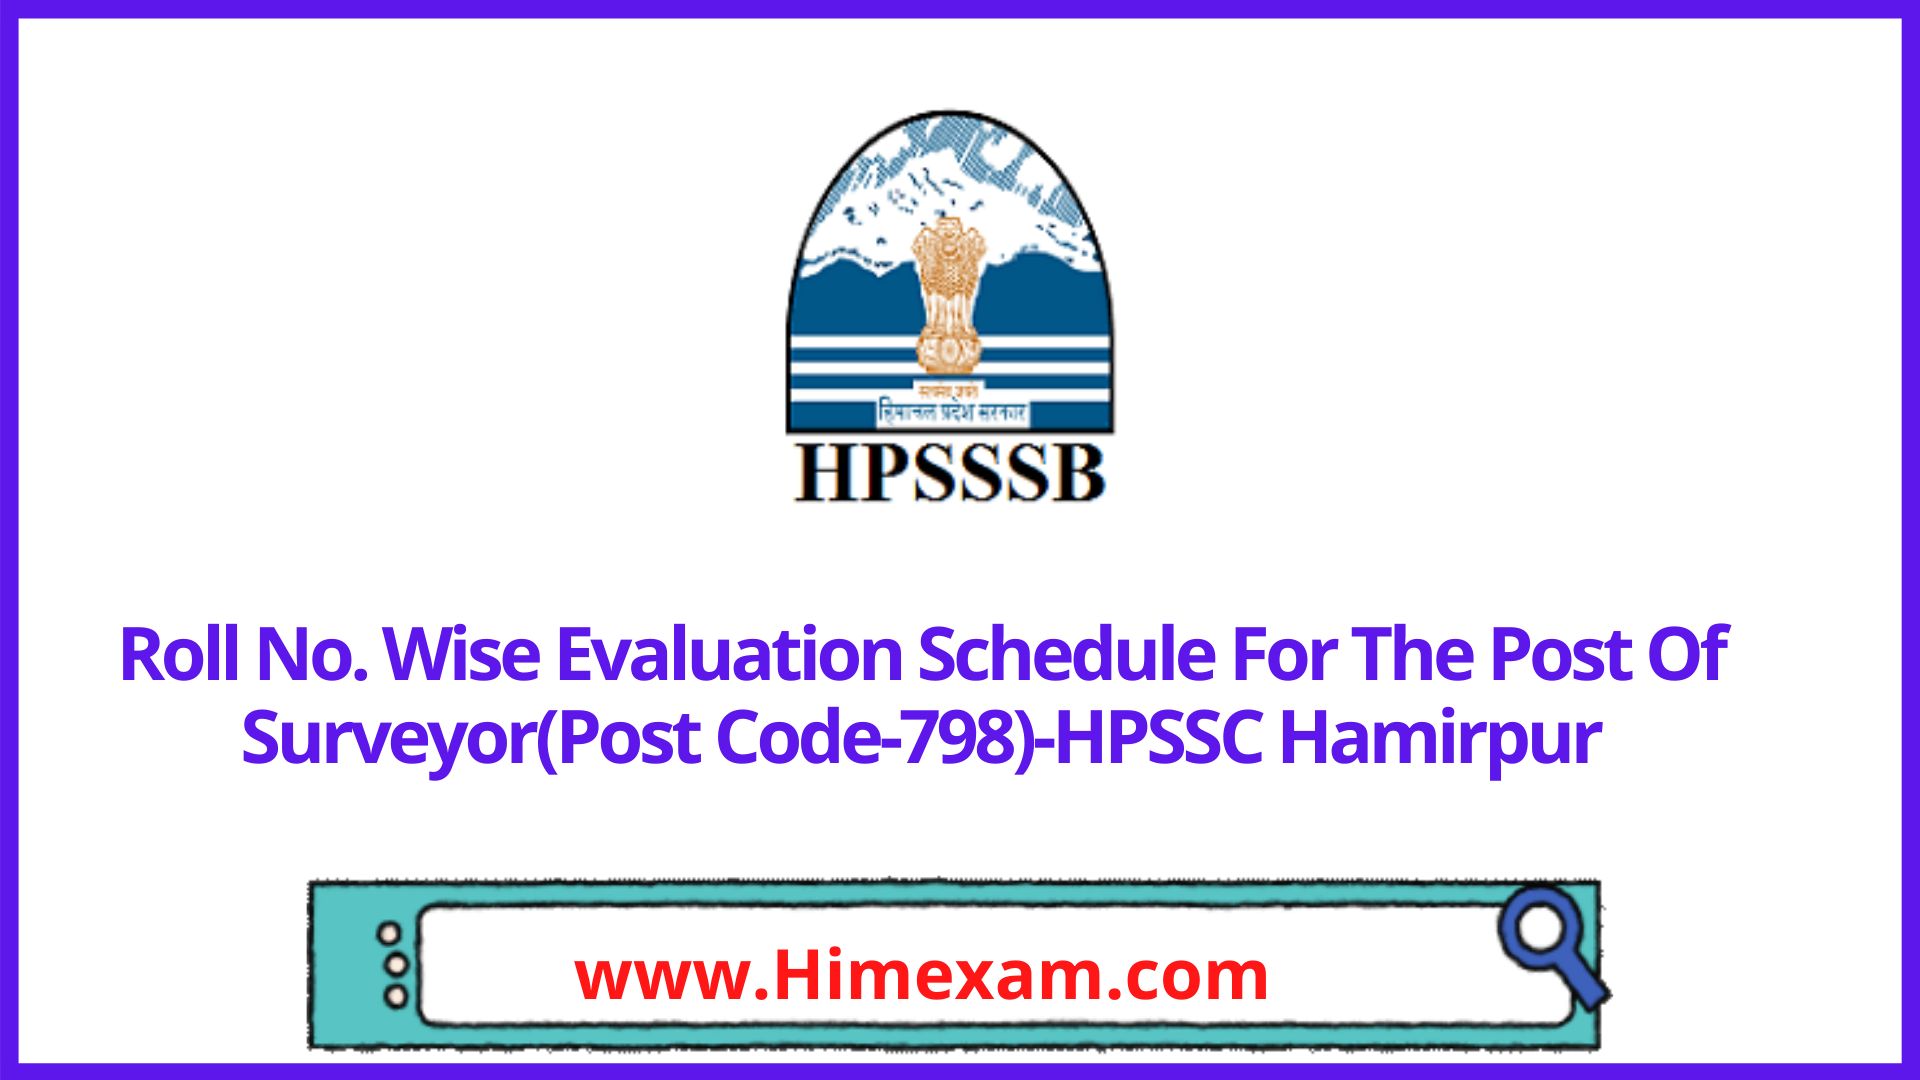 Roll No. Wise Evaluation Schedule For The Post Of Surveyor(Post Code-798)-HPSSC Hamirpur